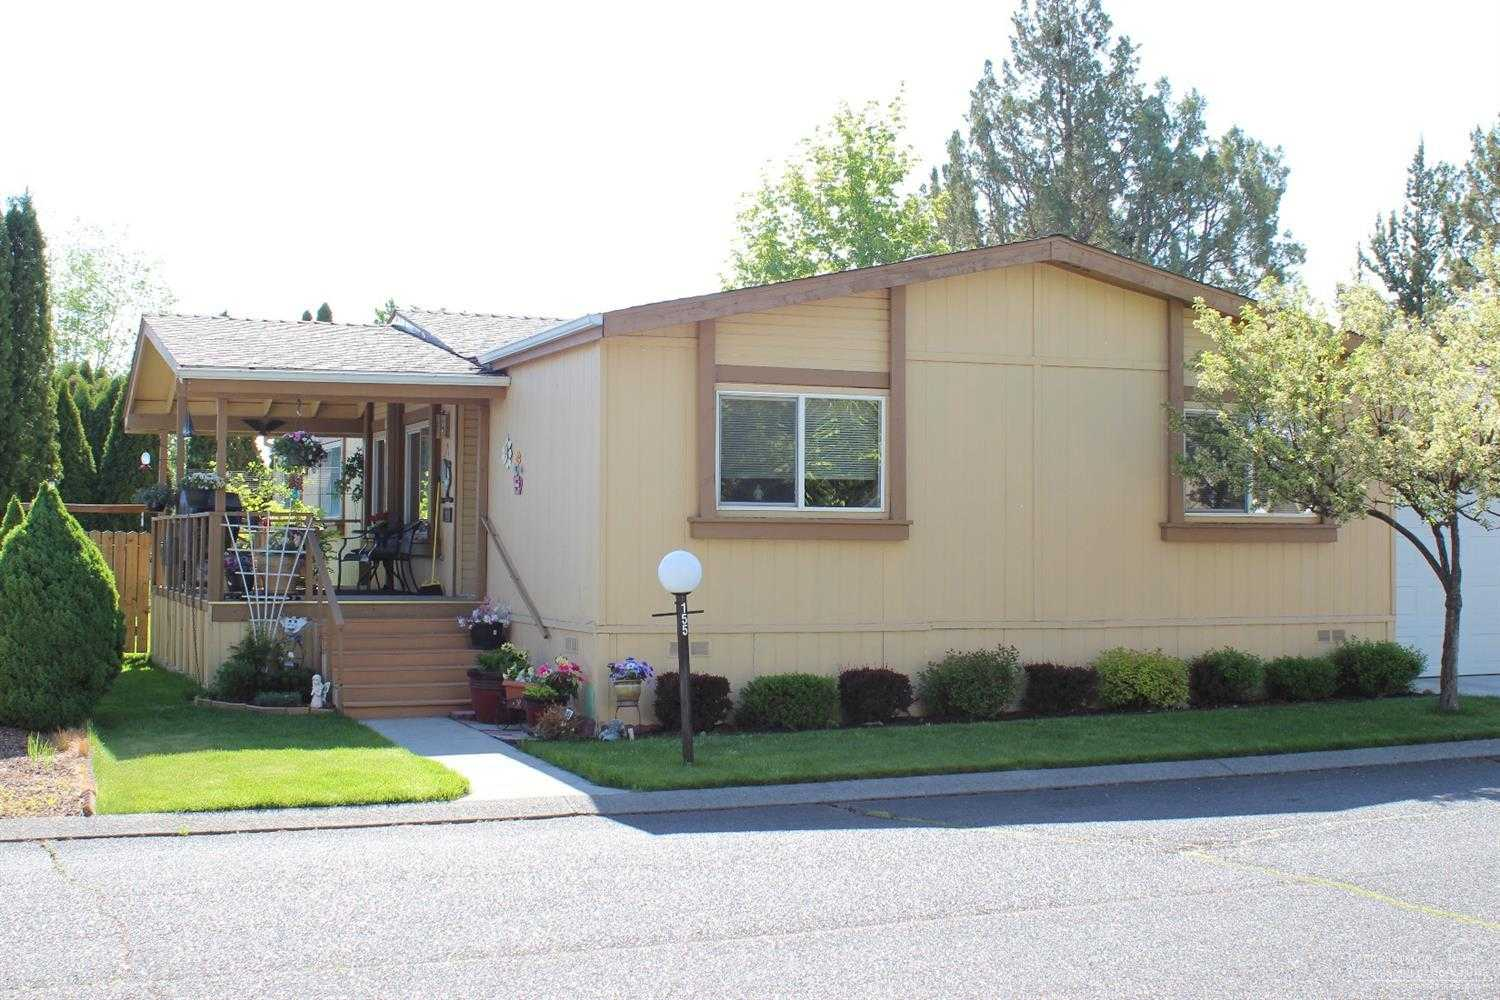 $118,000 - 3Br/2Ba -  for Sale in Bend